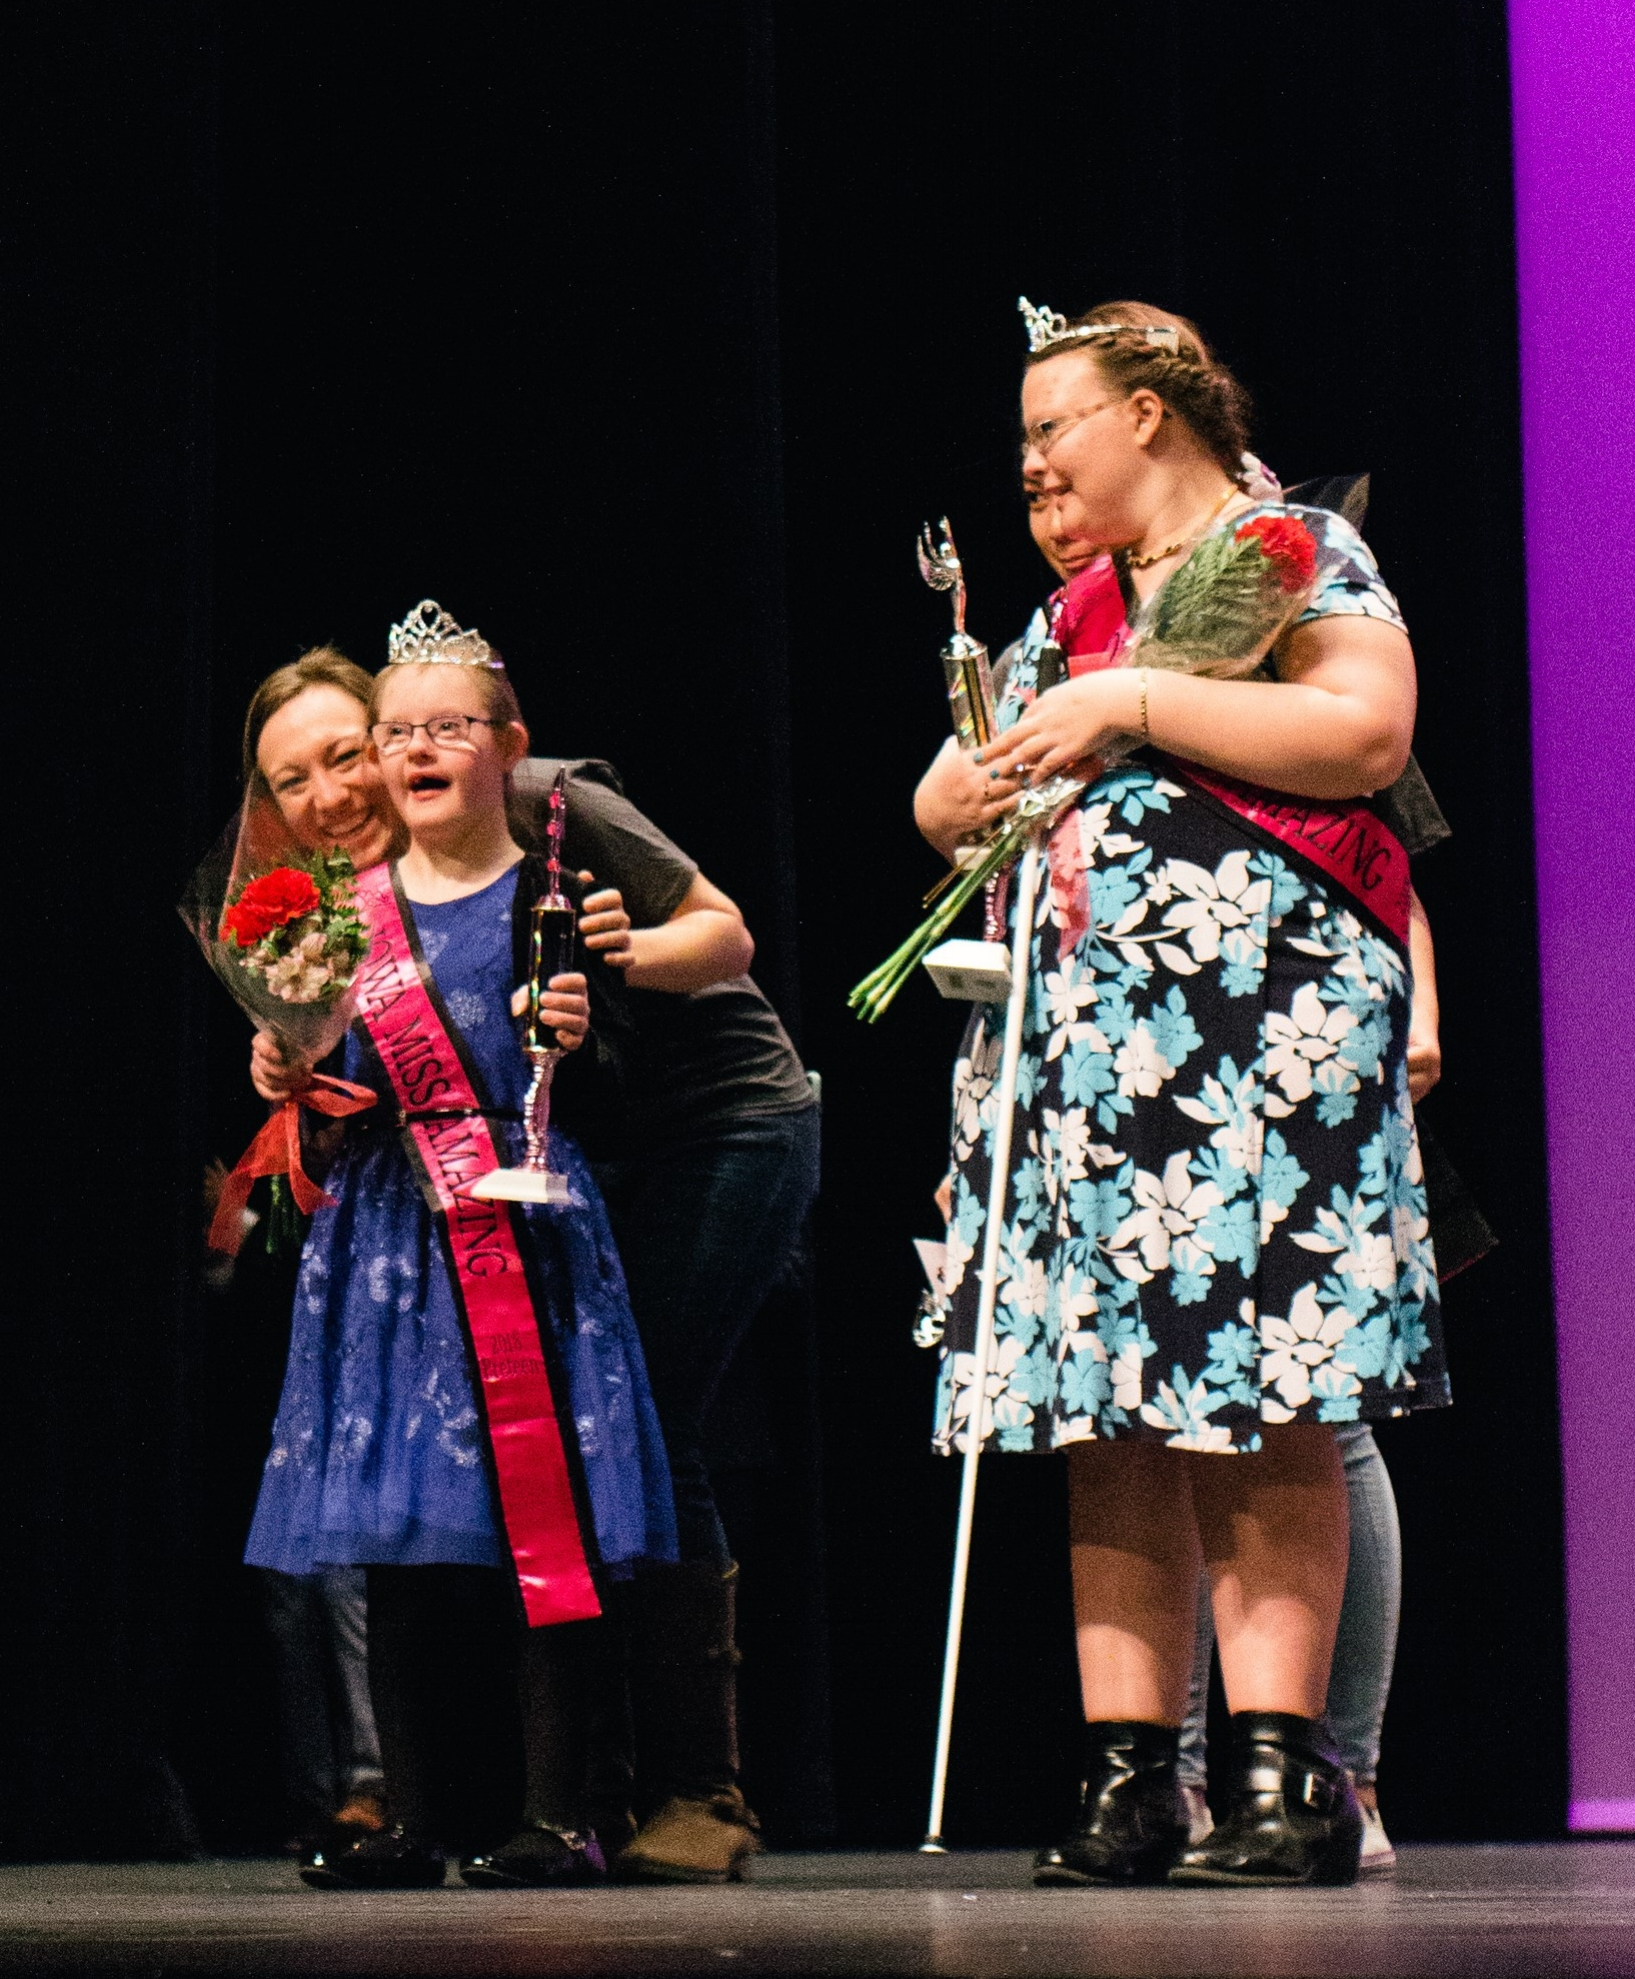 2019 Miss Amazing Event: - April 12-13, 2019Franklin Jr. High4801 Franklin Ave.Des Moines, IA 50310Applications are due March 1st!